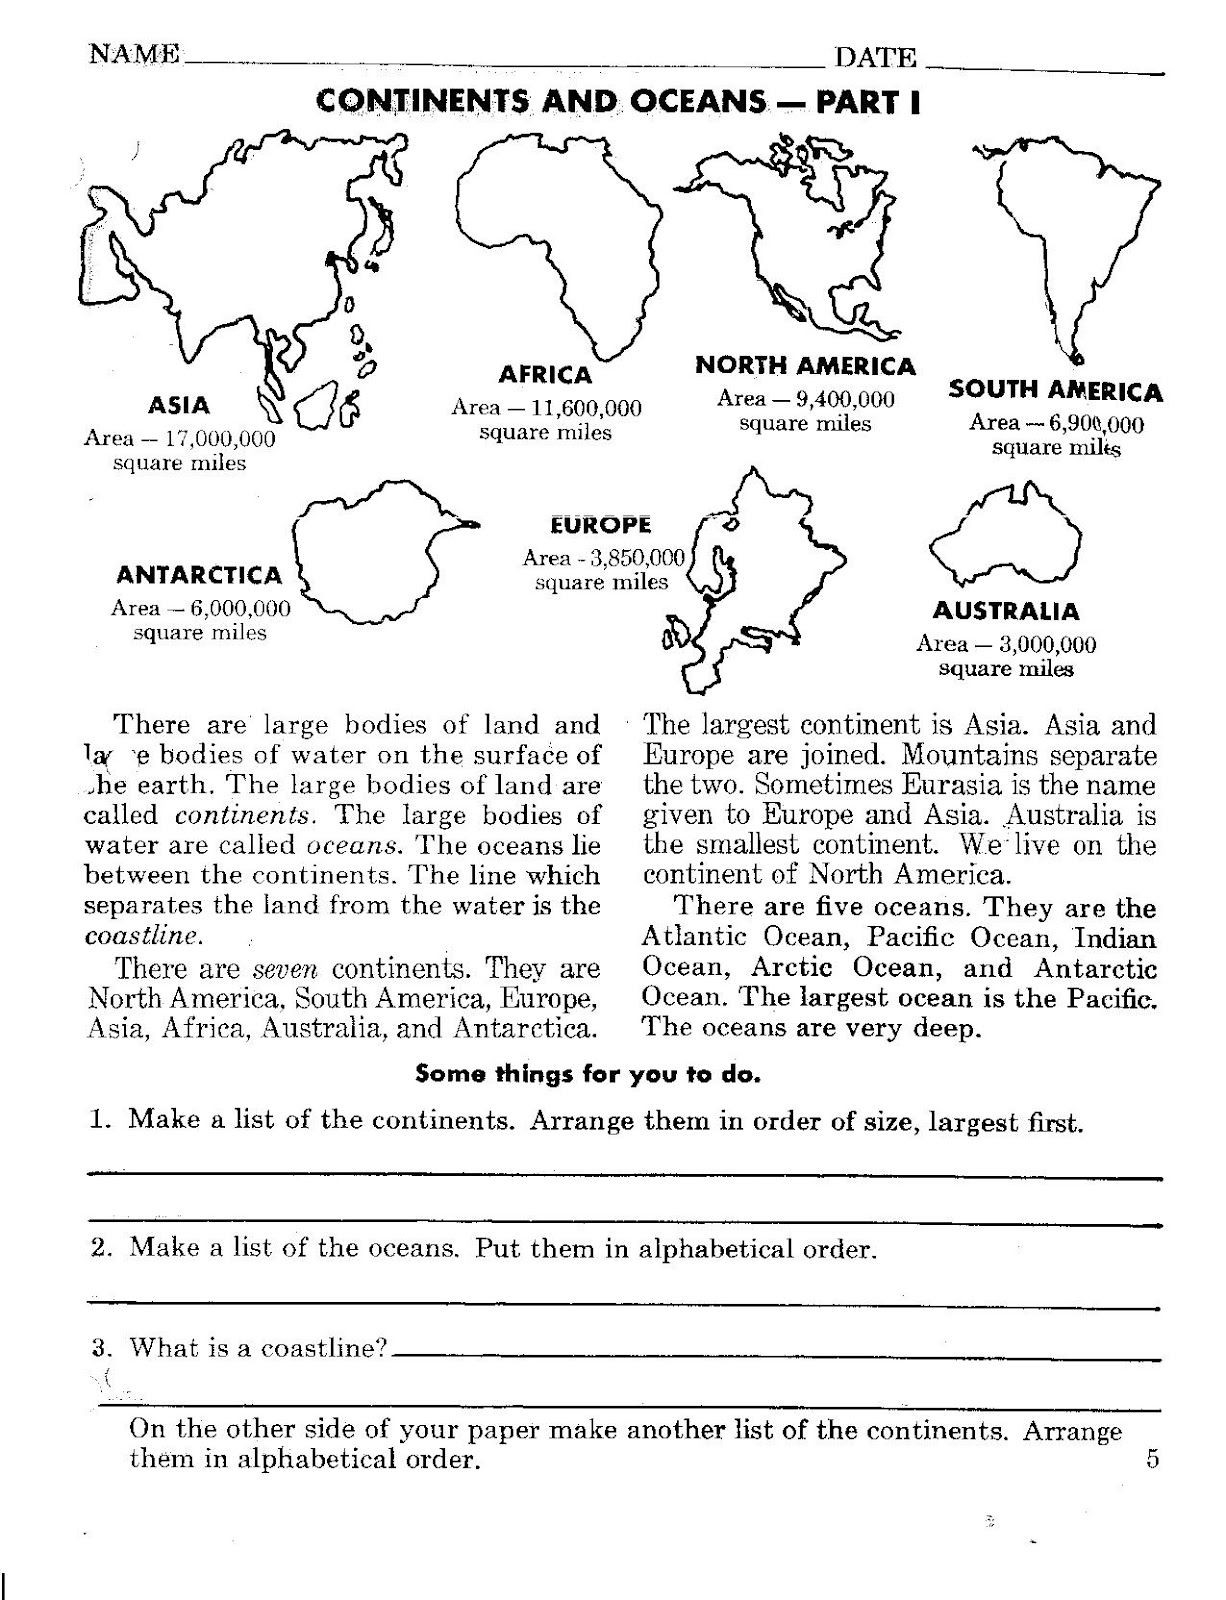 Continents and Oceans Printable Worksheets Continents and Oceans Worksheets